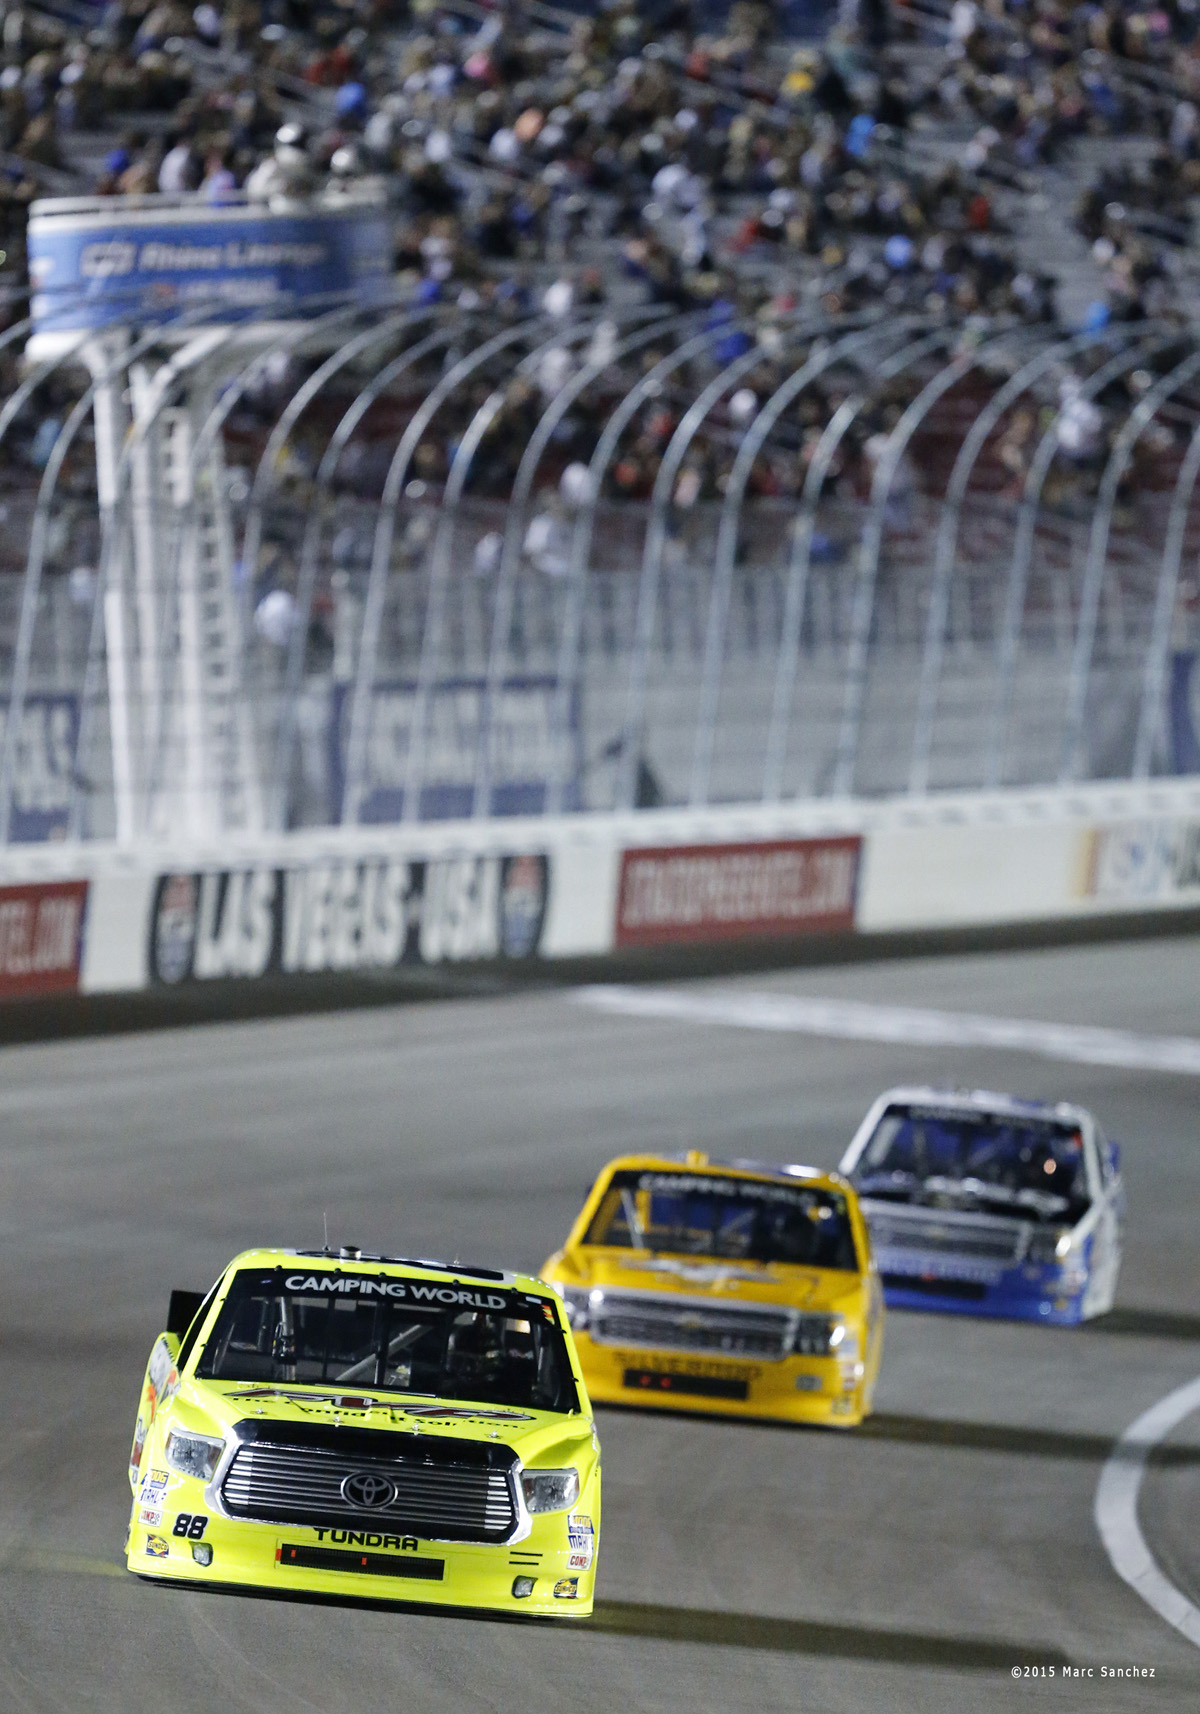 2015 October 03: Matt Crafton (88) ThorSports Racing Toyota Tundra at the start of the 19th annual Rhino Linings 350 NASCAR Camping World Truck Series at the Las Vegas Motor Speedway in Las Vegas, Nevada. (Photo by Marc Sanchez/Icon Sportswire)